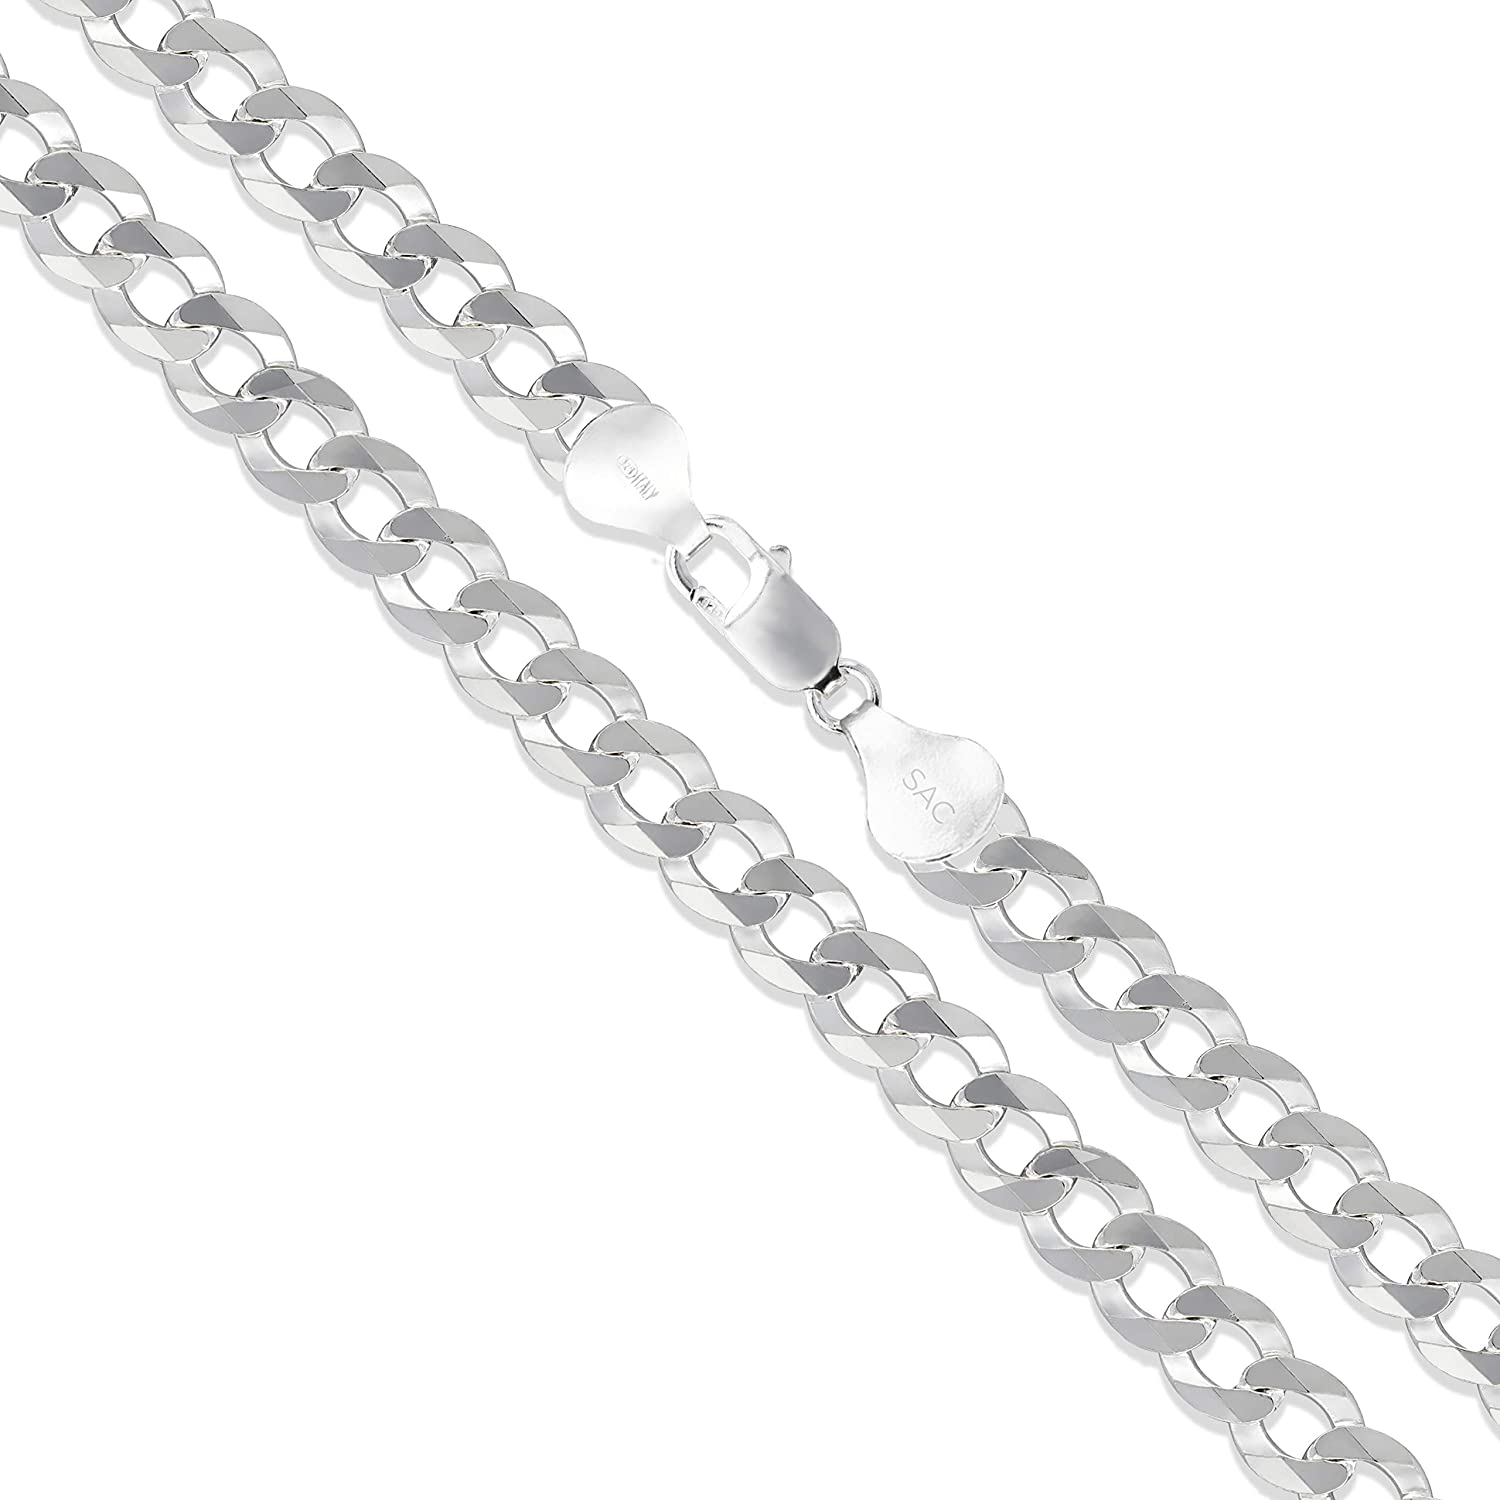 Men's Sterling Silver Flat Curb Chain 5.2mm-14.8mm Solid 925 Italy Link Necklace